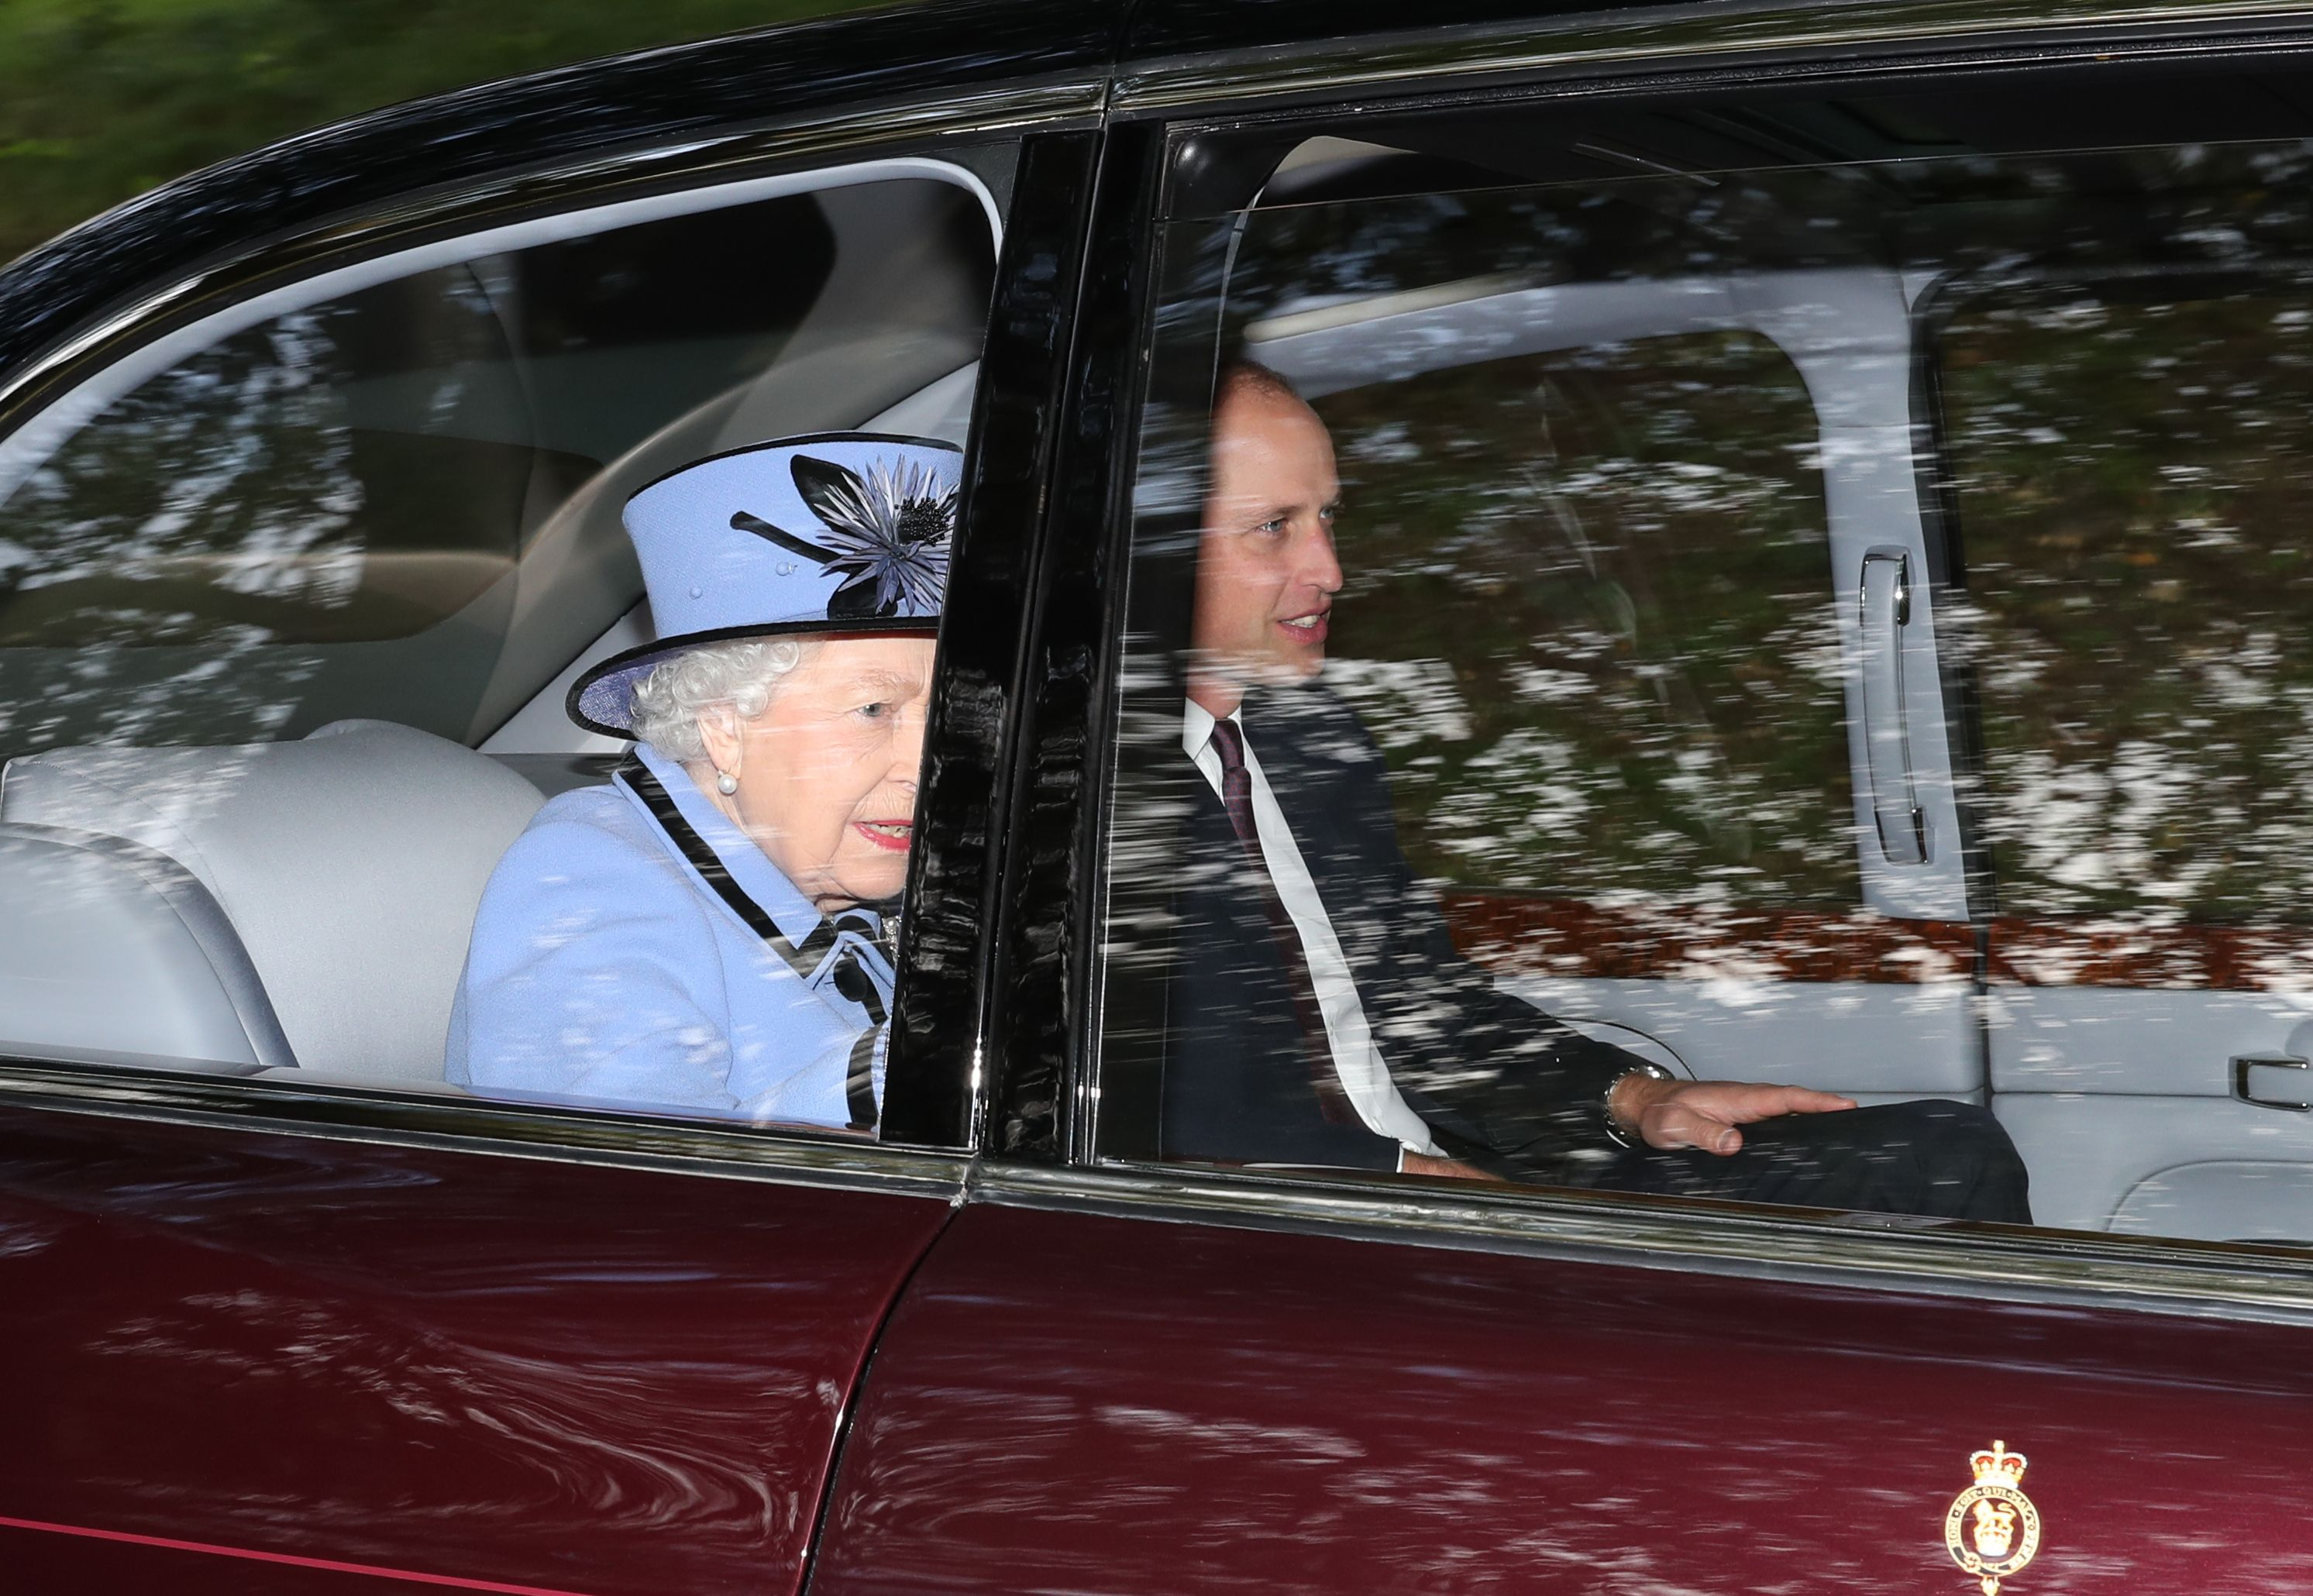 Prince William Just Made a Surprise Visit to Balmoral to Attend Church with the Queen